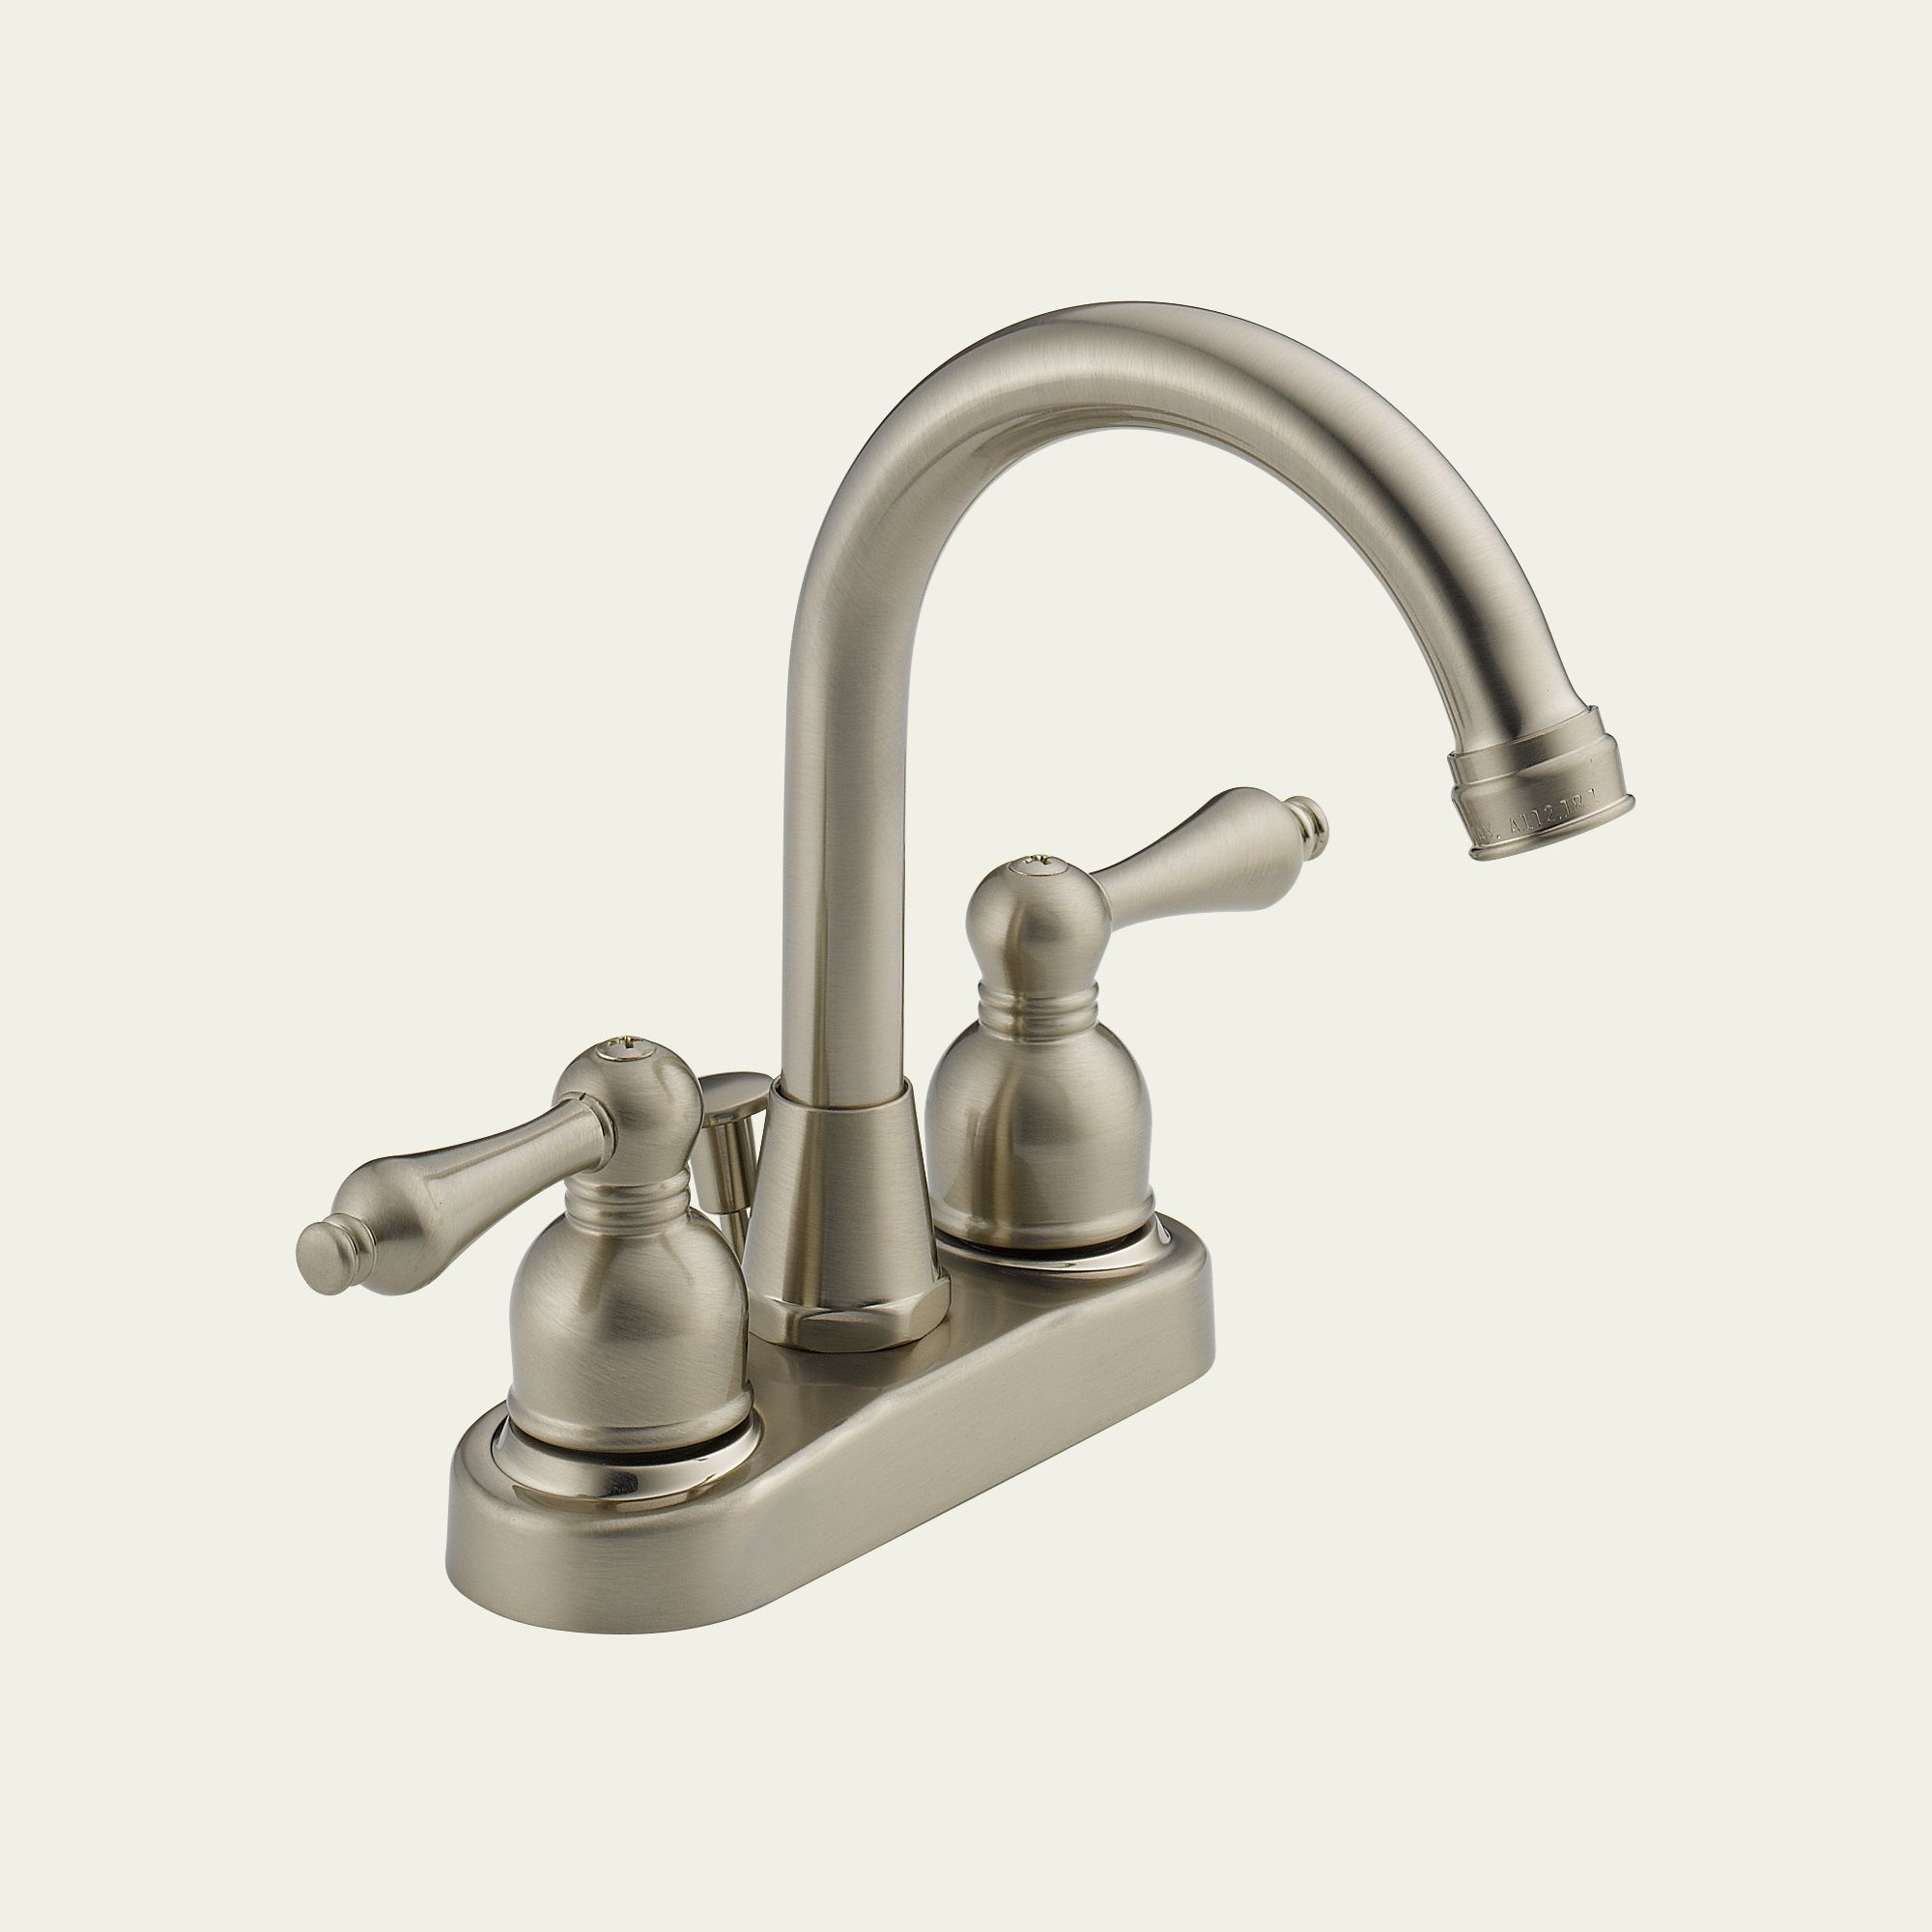 Peerless Faucets : Details about Peerless WAS00X Two Handle Centerset Bathroom Faucet ...